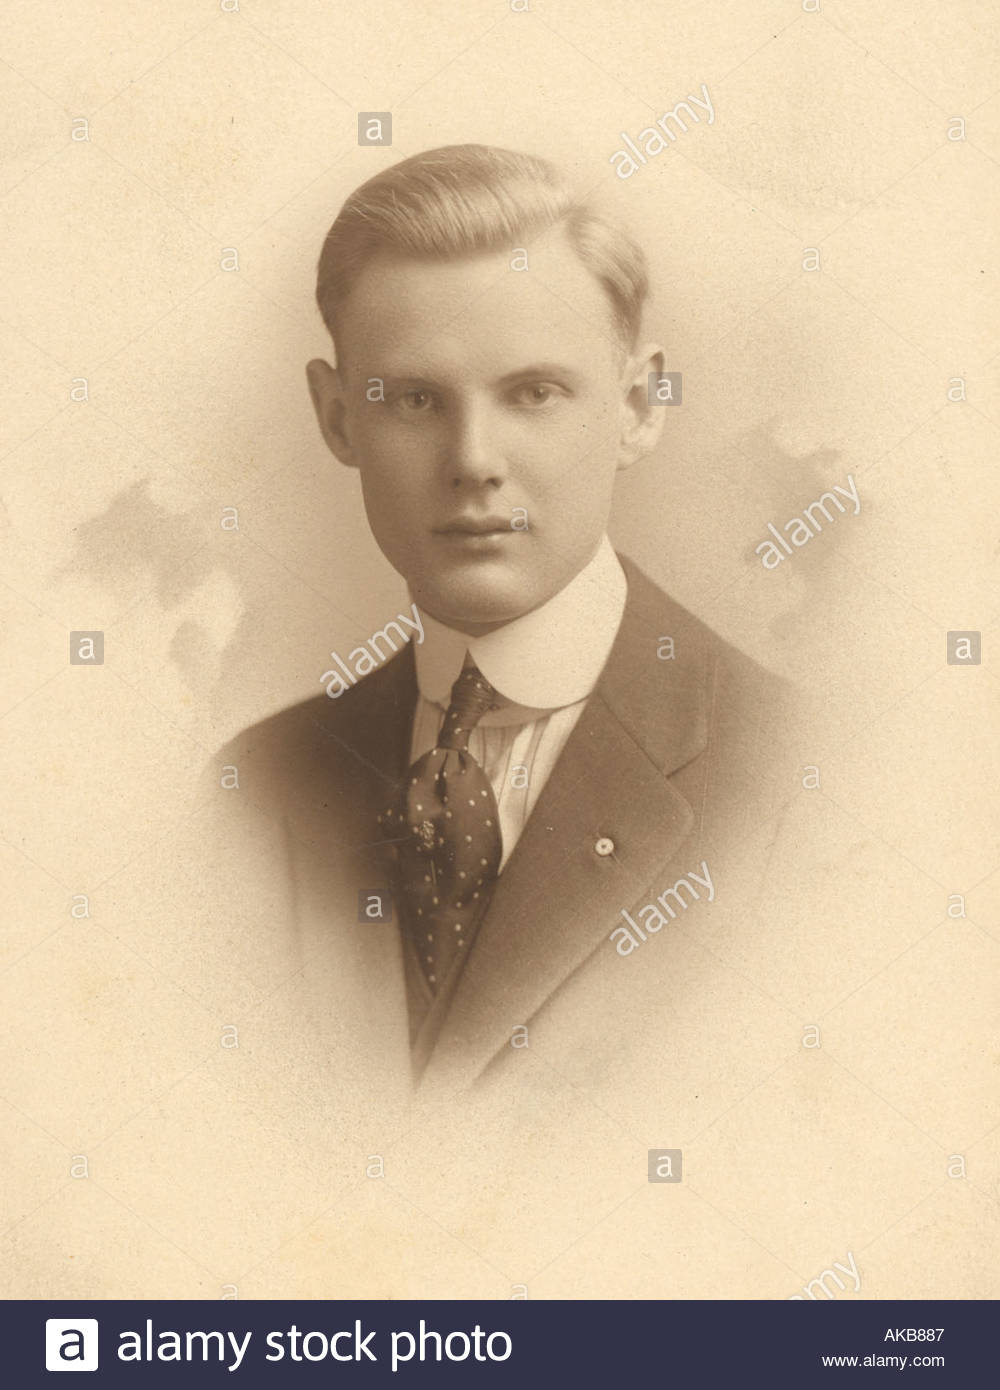 vintage photograph of a young man - Stock Image